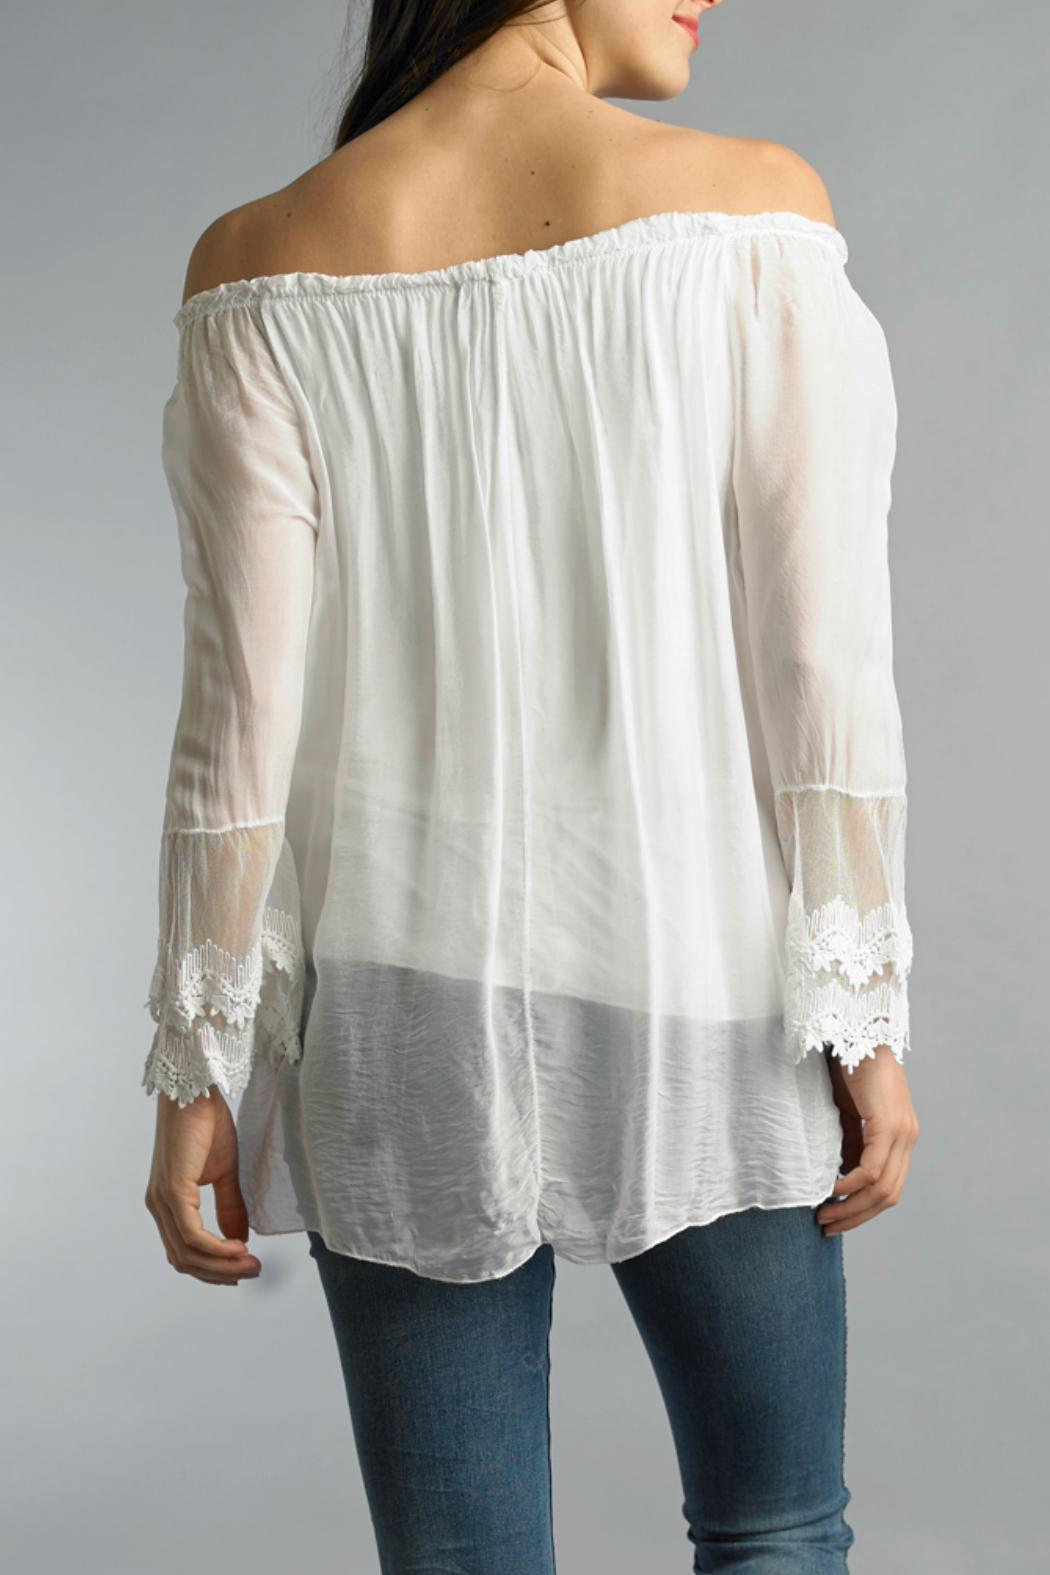 Tempo Paris Embroidered Blouse - Front Full Image